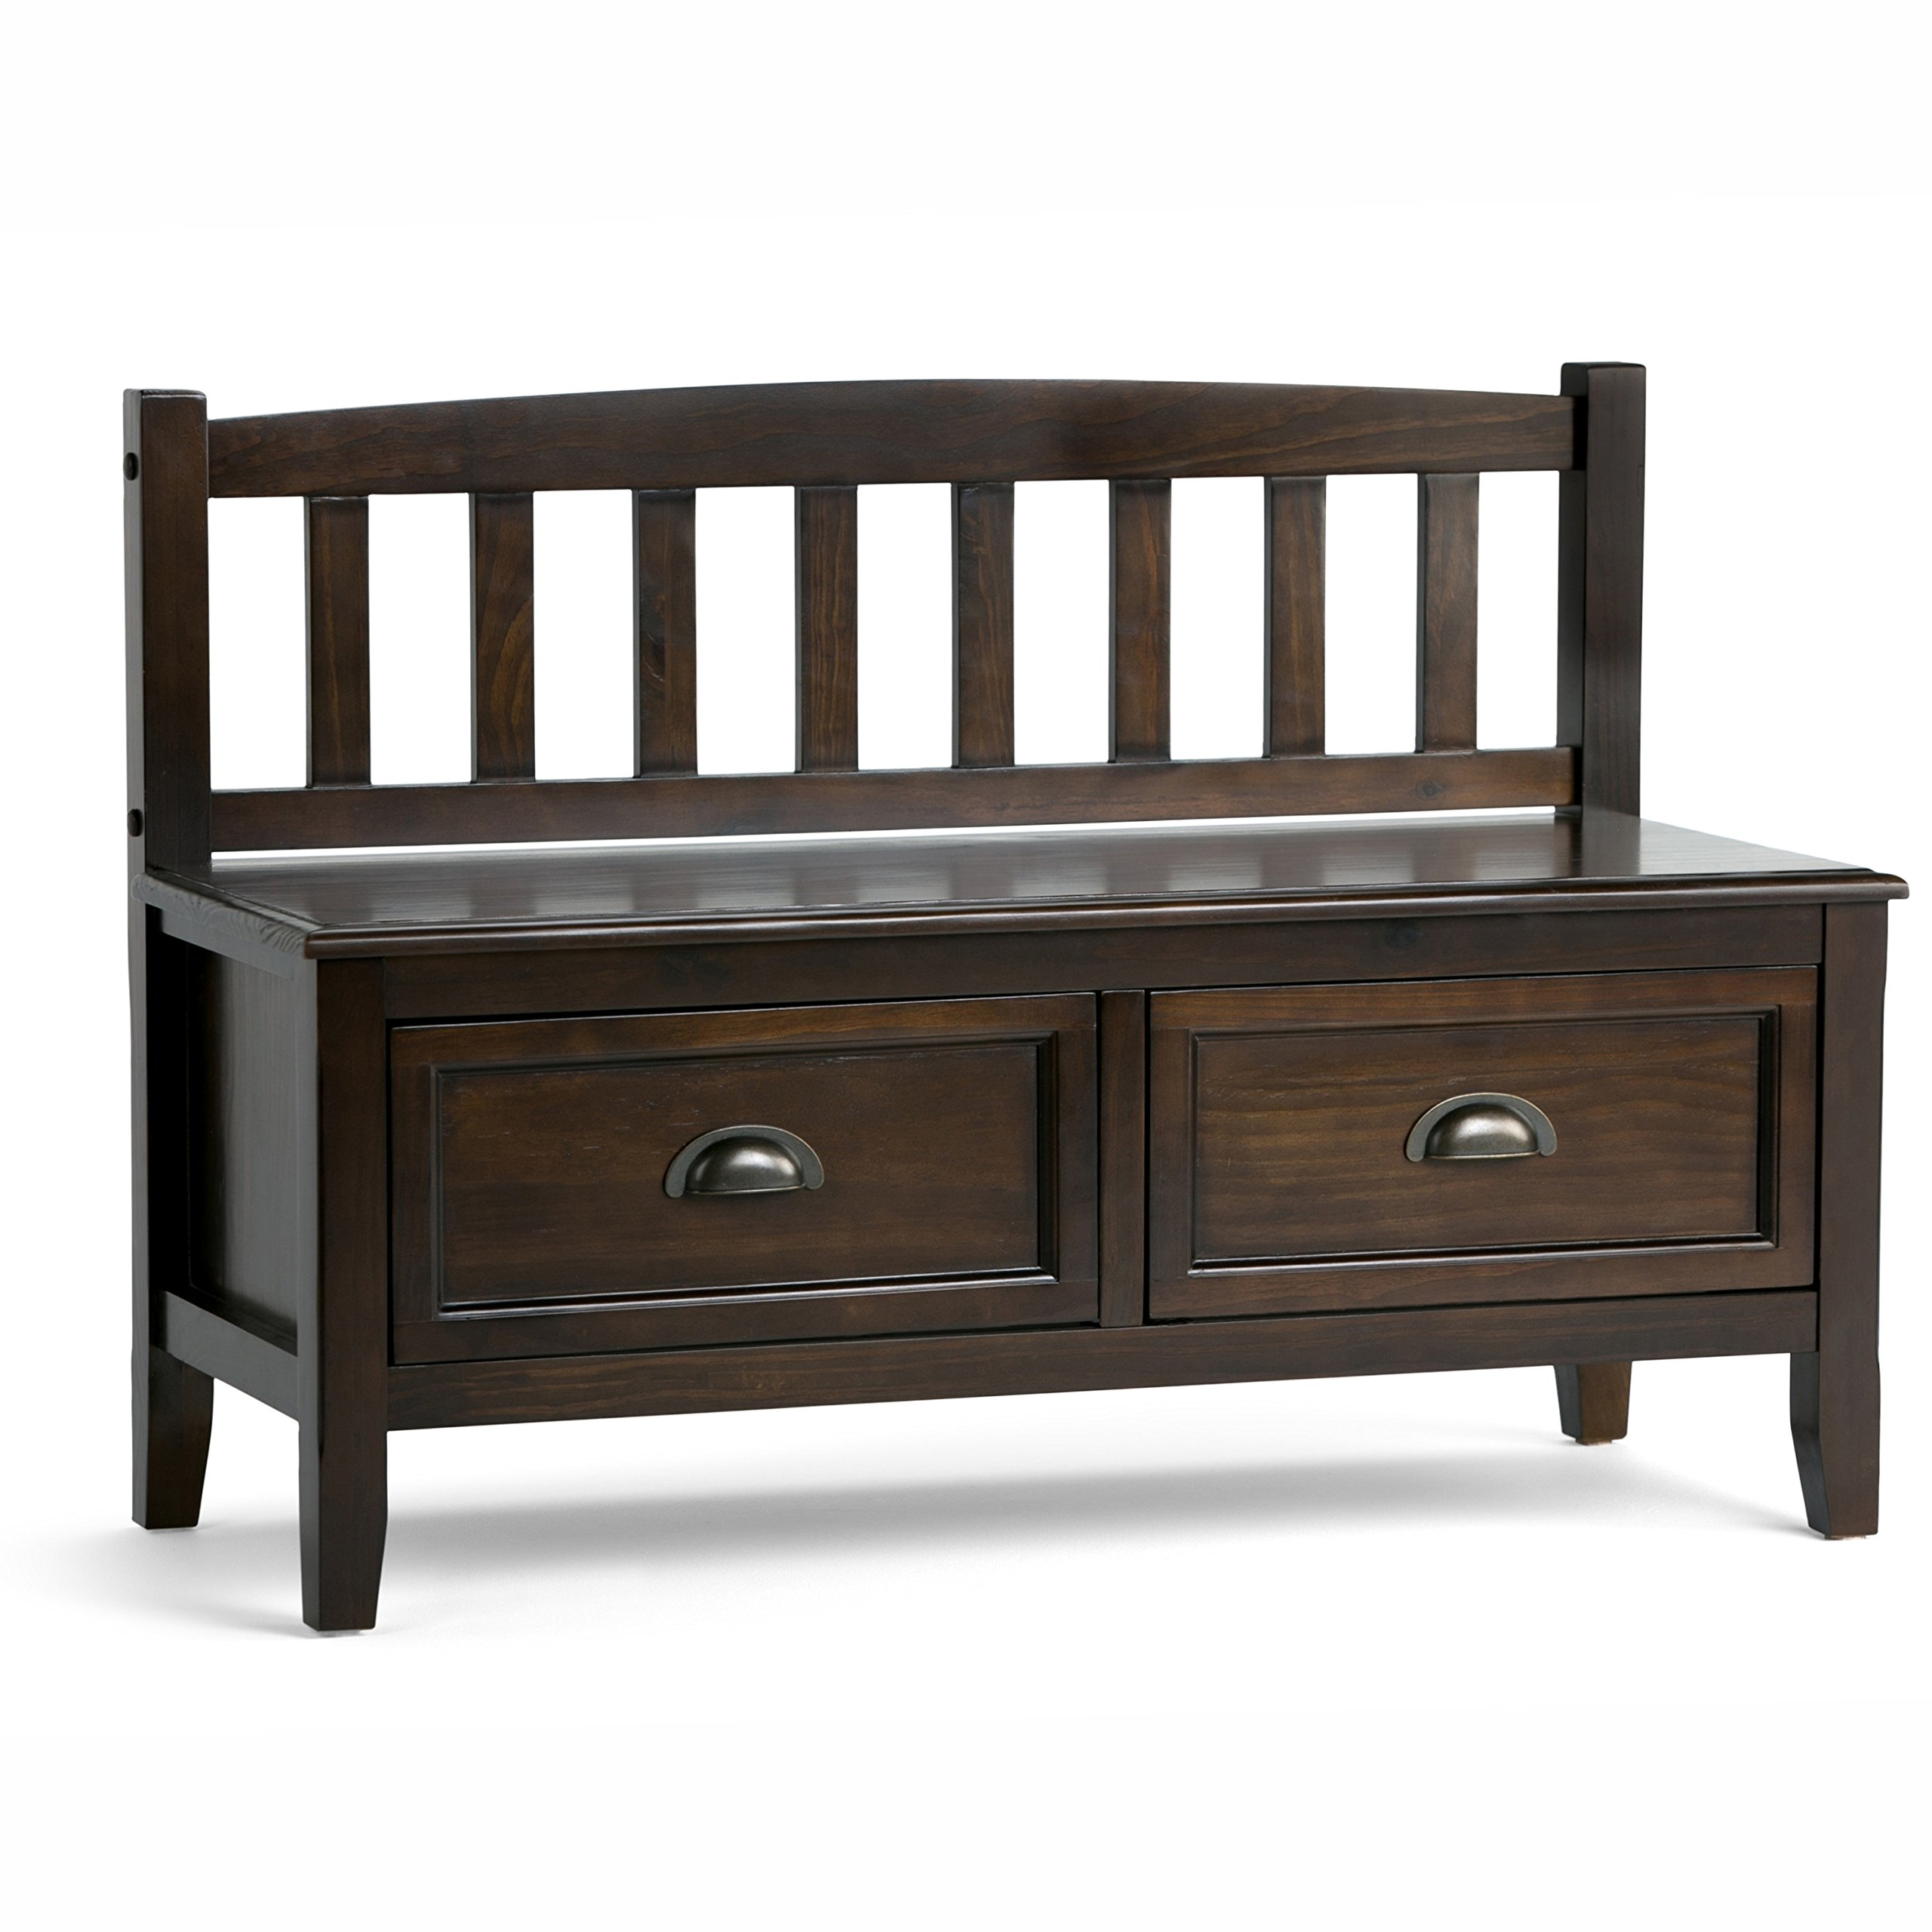 Simpli Home Burlington Entryway Storage Bench with Drawers, Espresso Brown